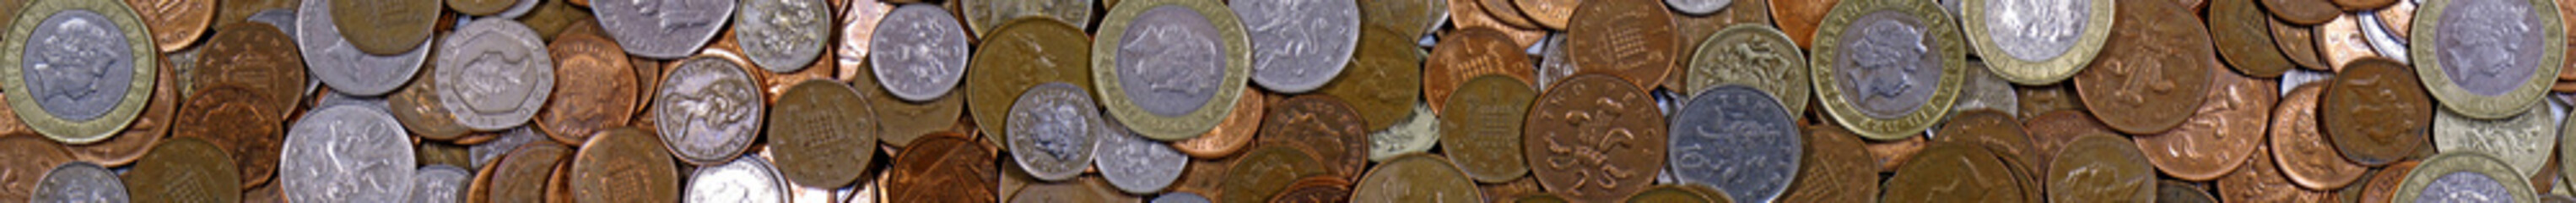 coins uk pence banner